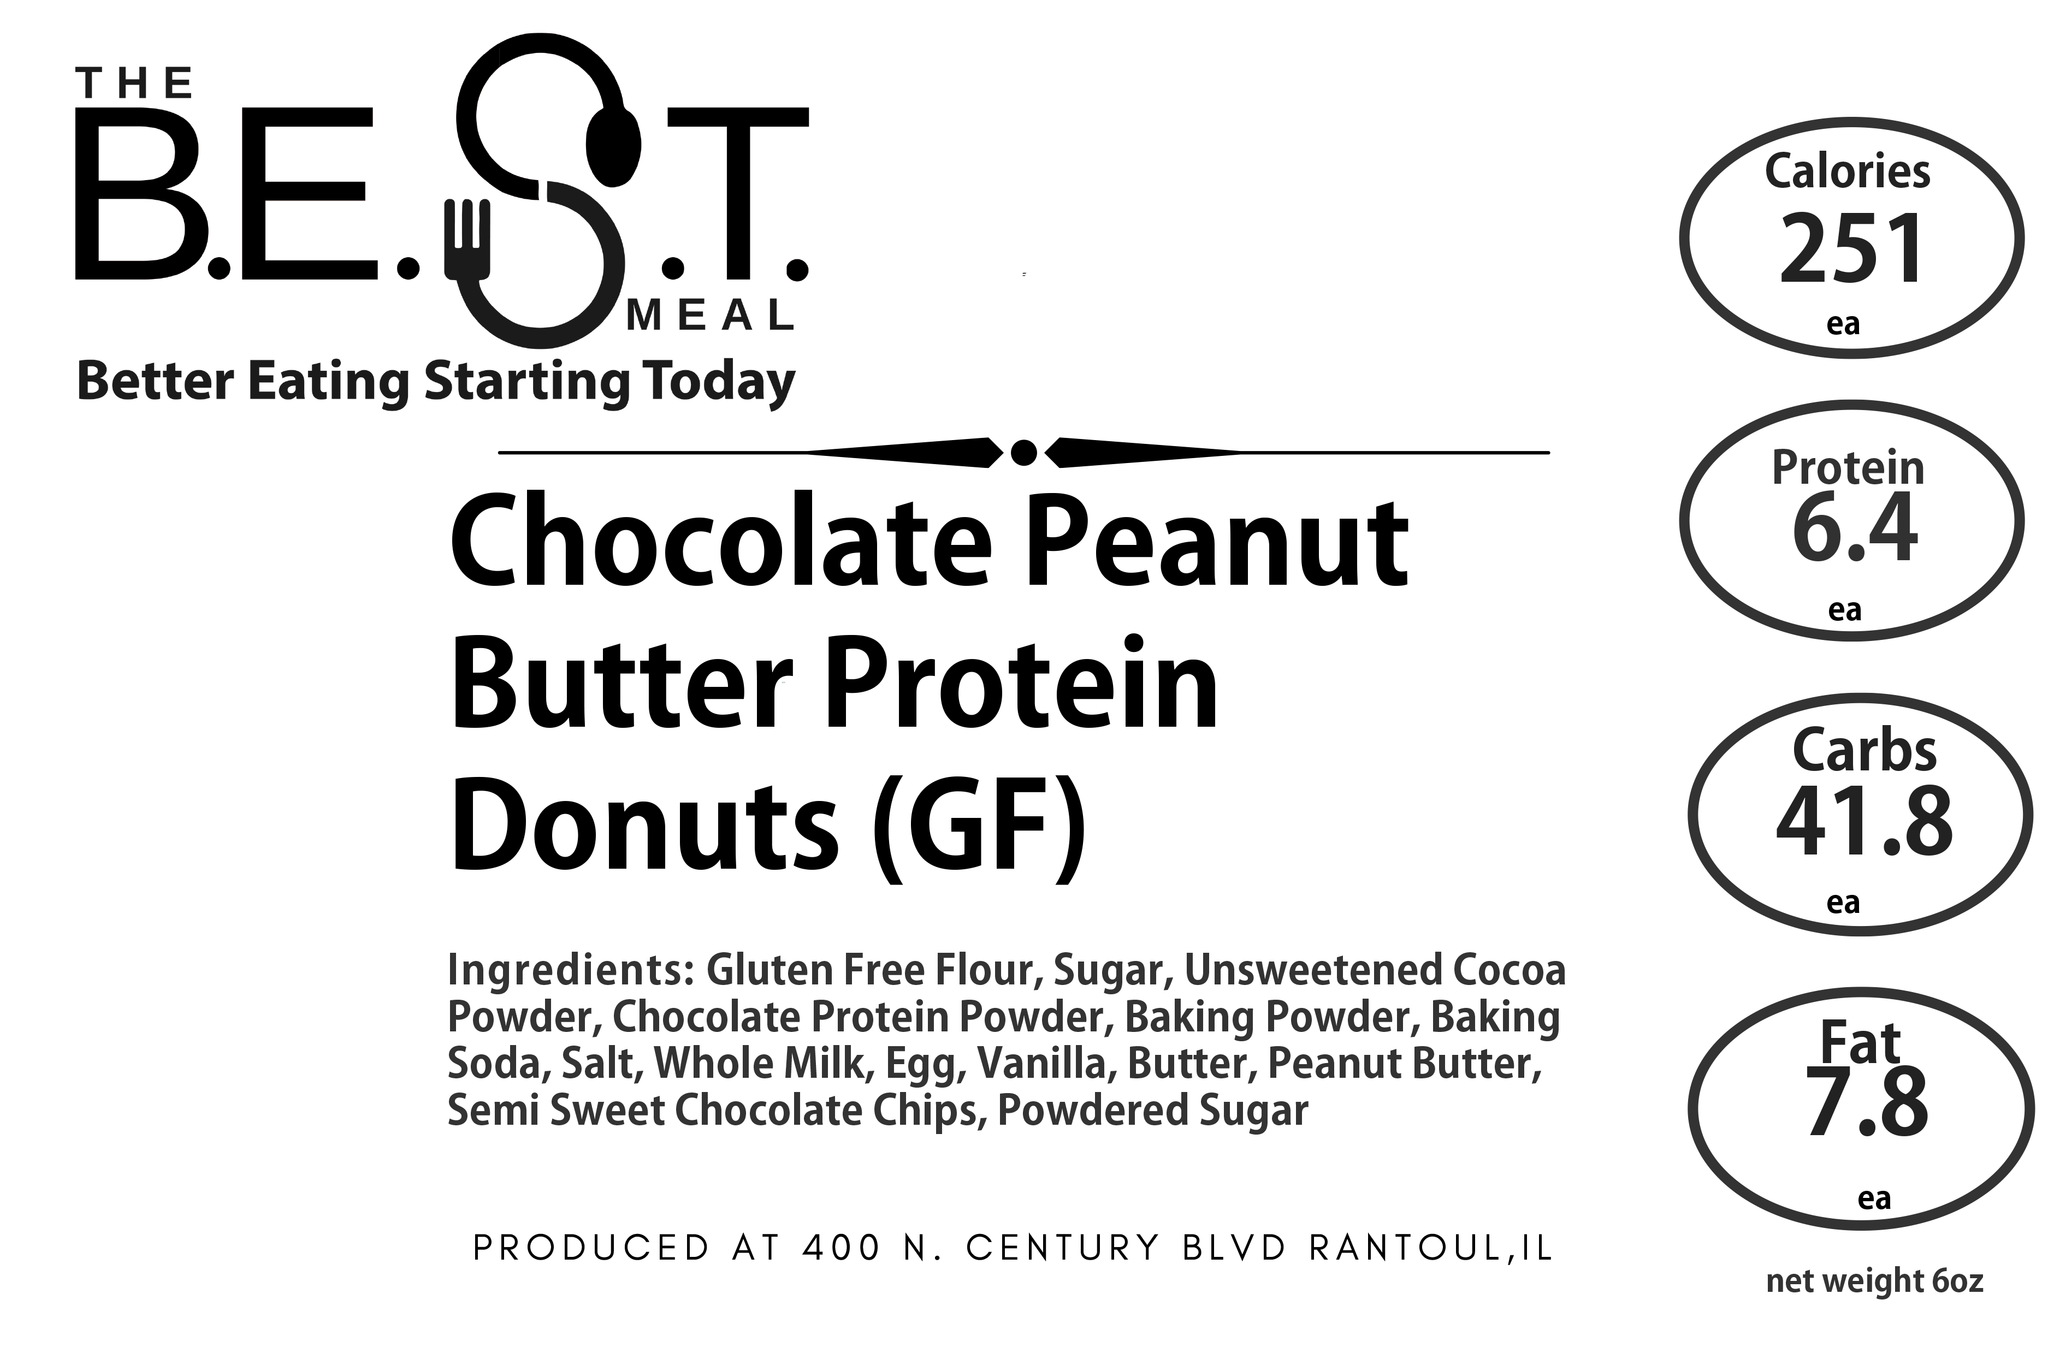 Chocolate Peanut Butter Protein Donuts (GF)